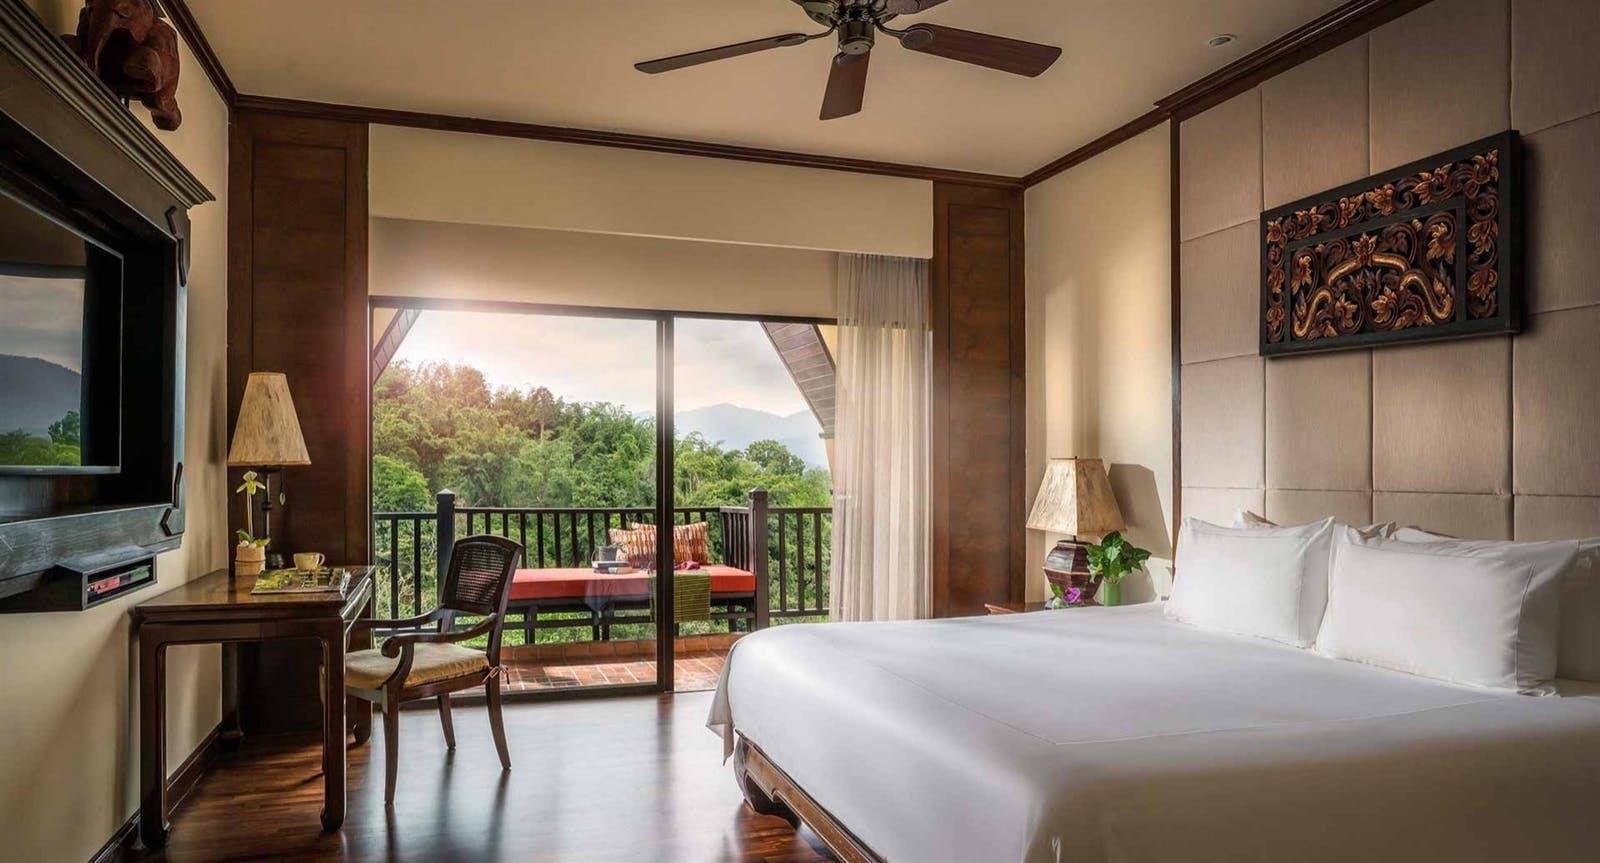 Country View Room at Anantara Golden Triangle Elephant Camp Resort, Chiang Rai, Thailand, Asia